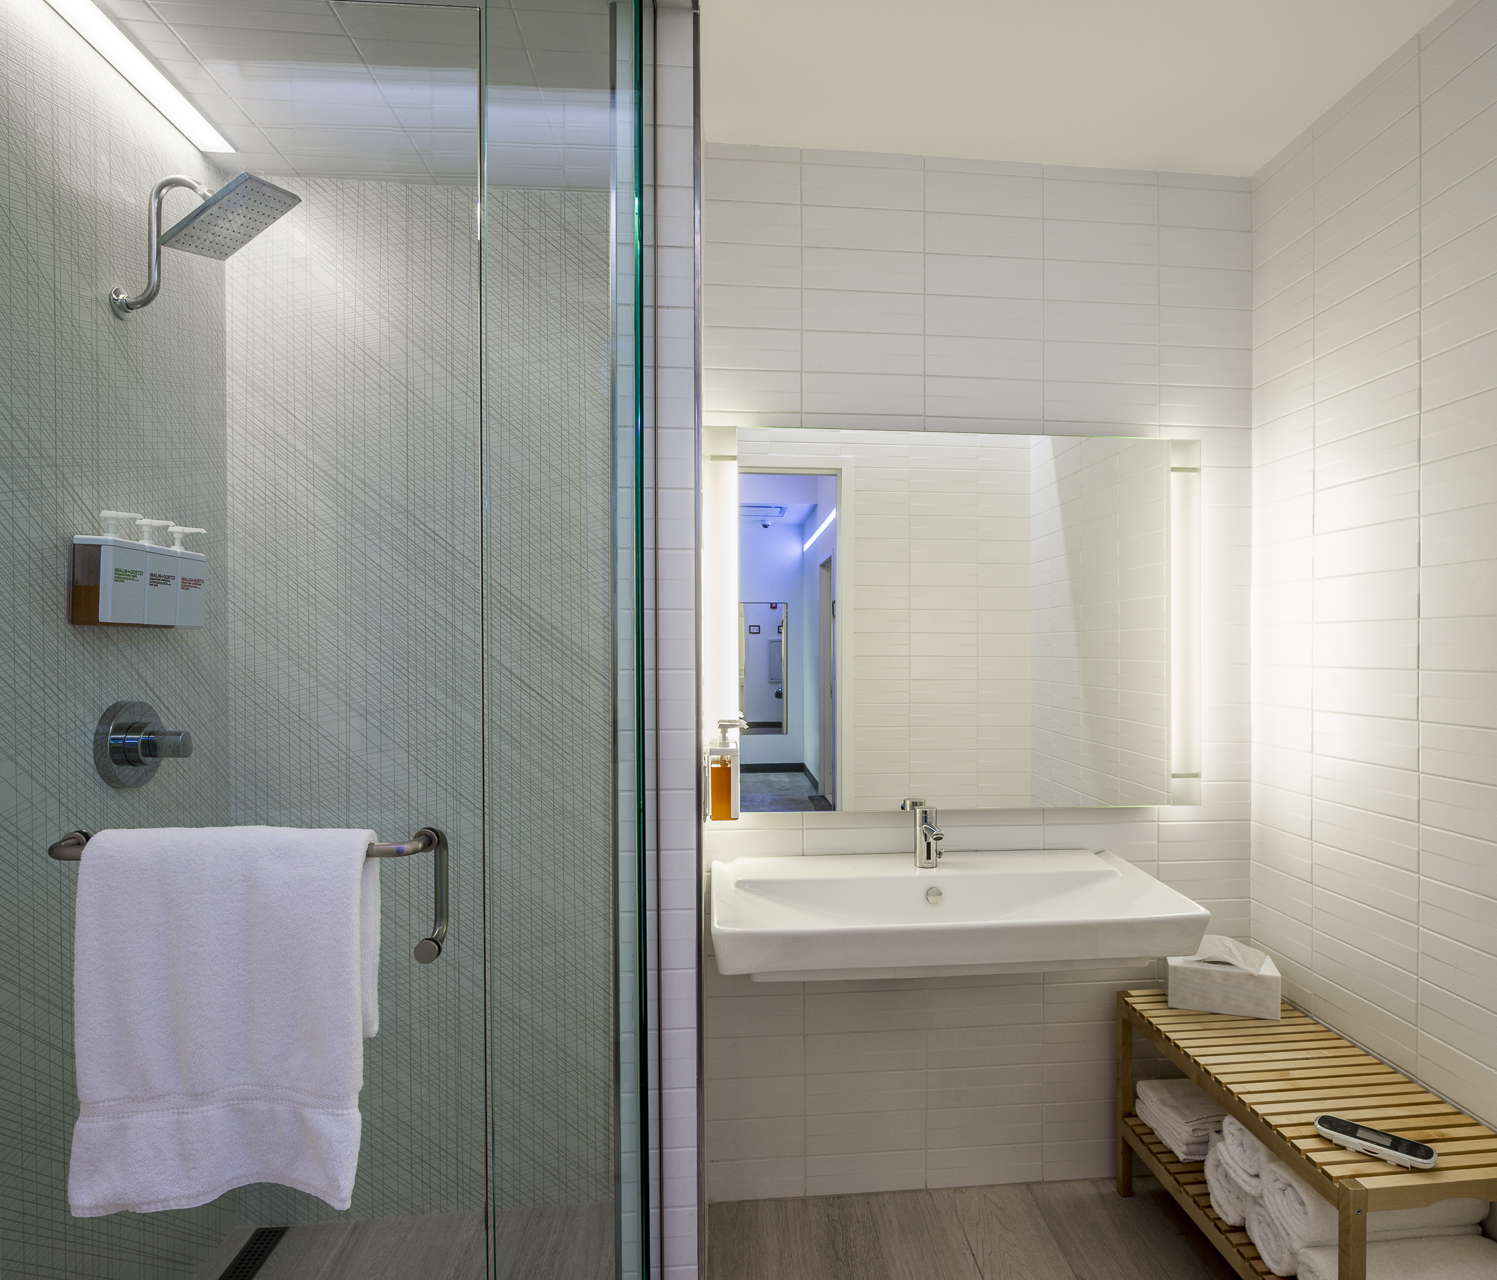 Visitors can reserve a shower in advance to ensure they stick to their travel schedule.{ }(Image: Courtesy RoamFitness)